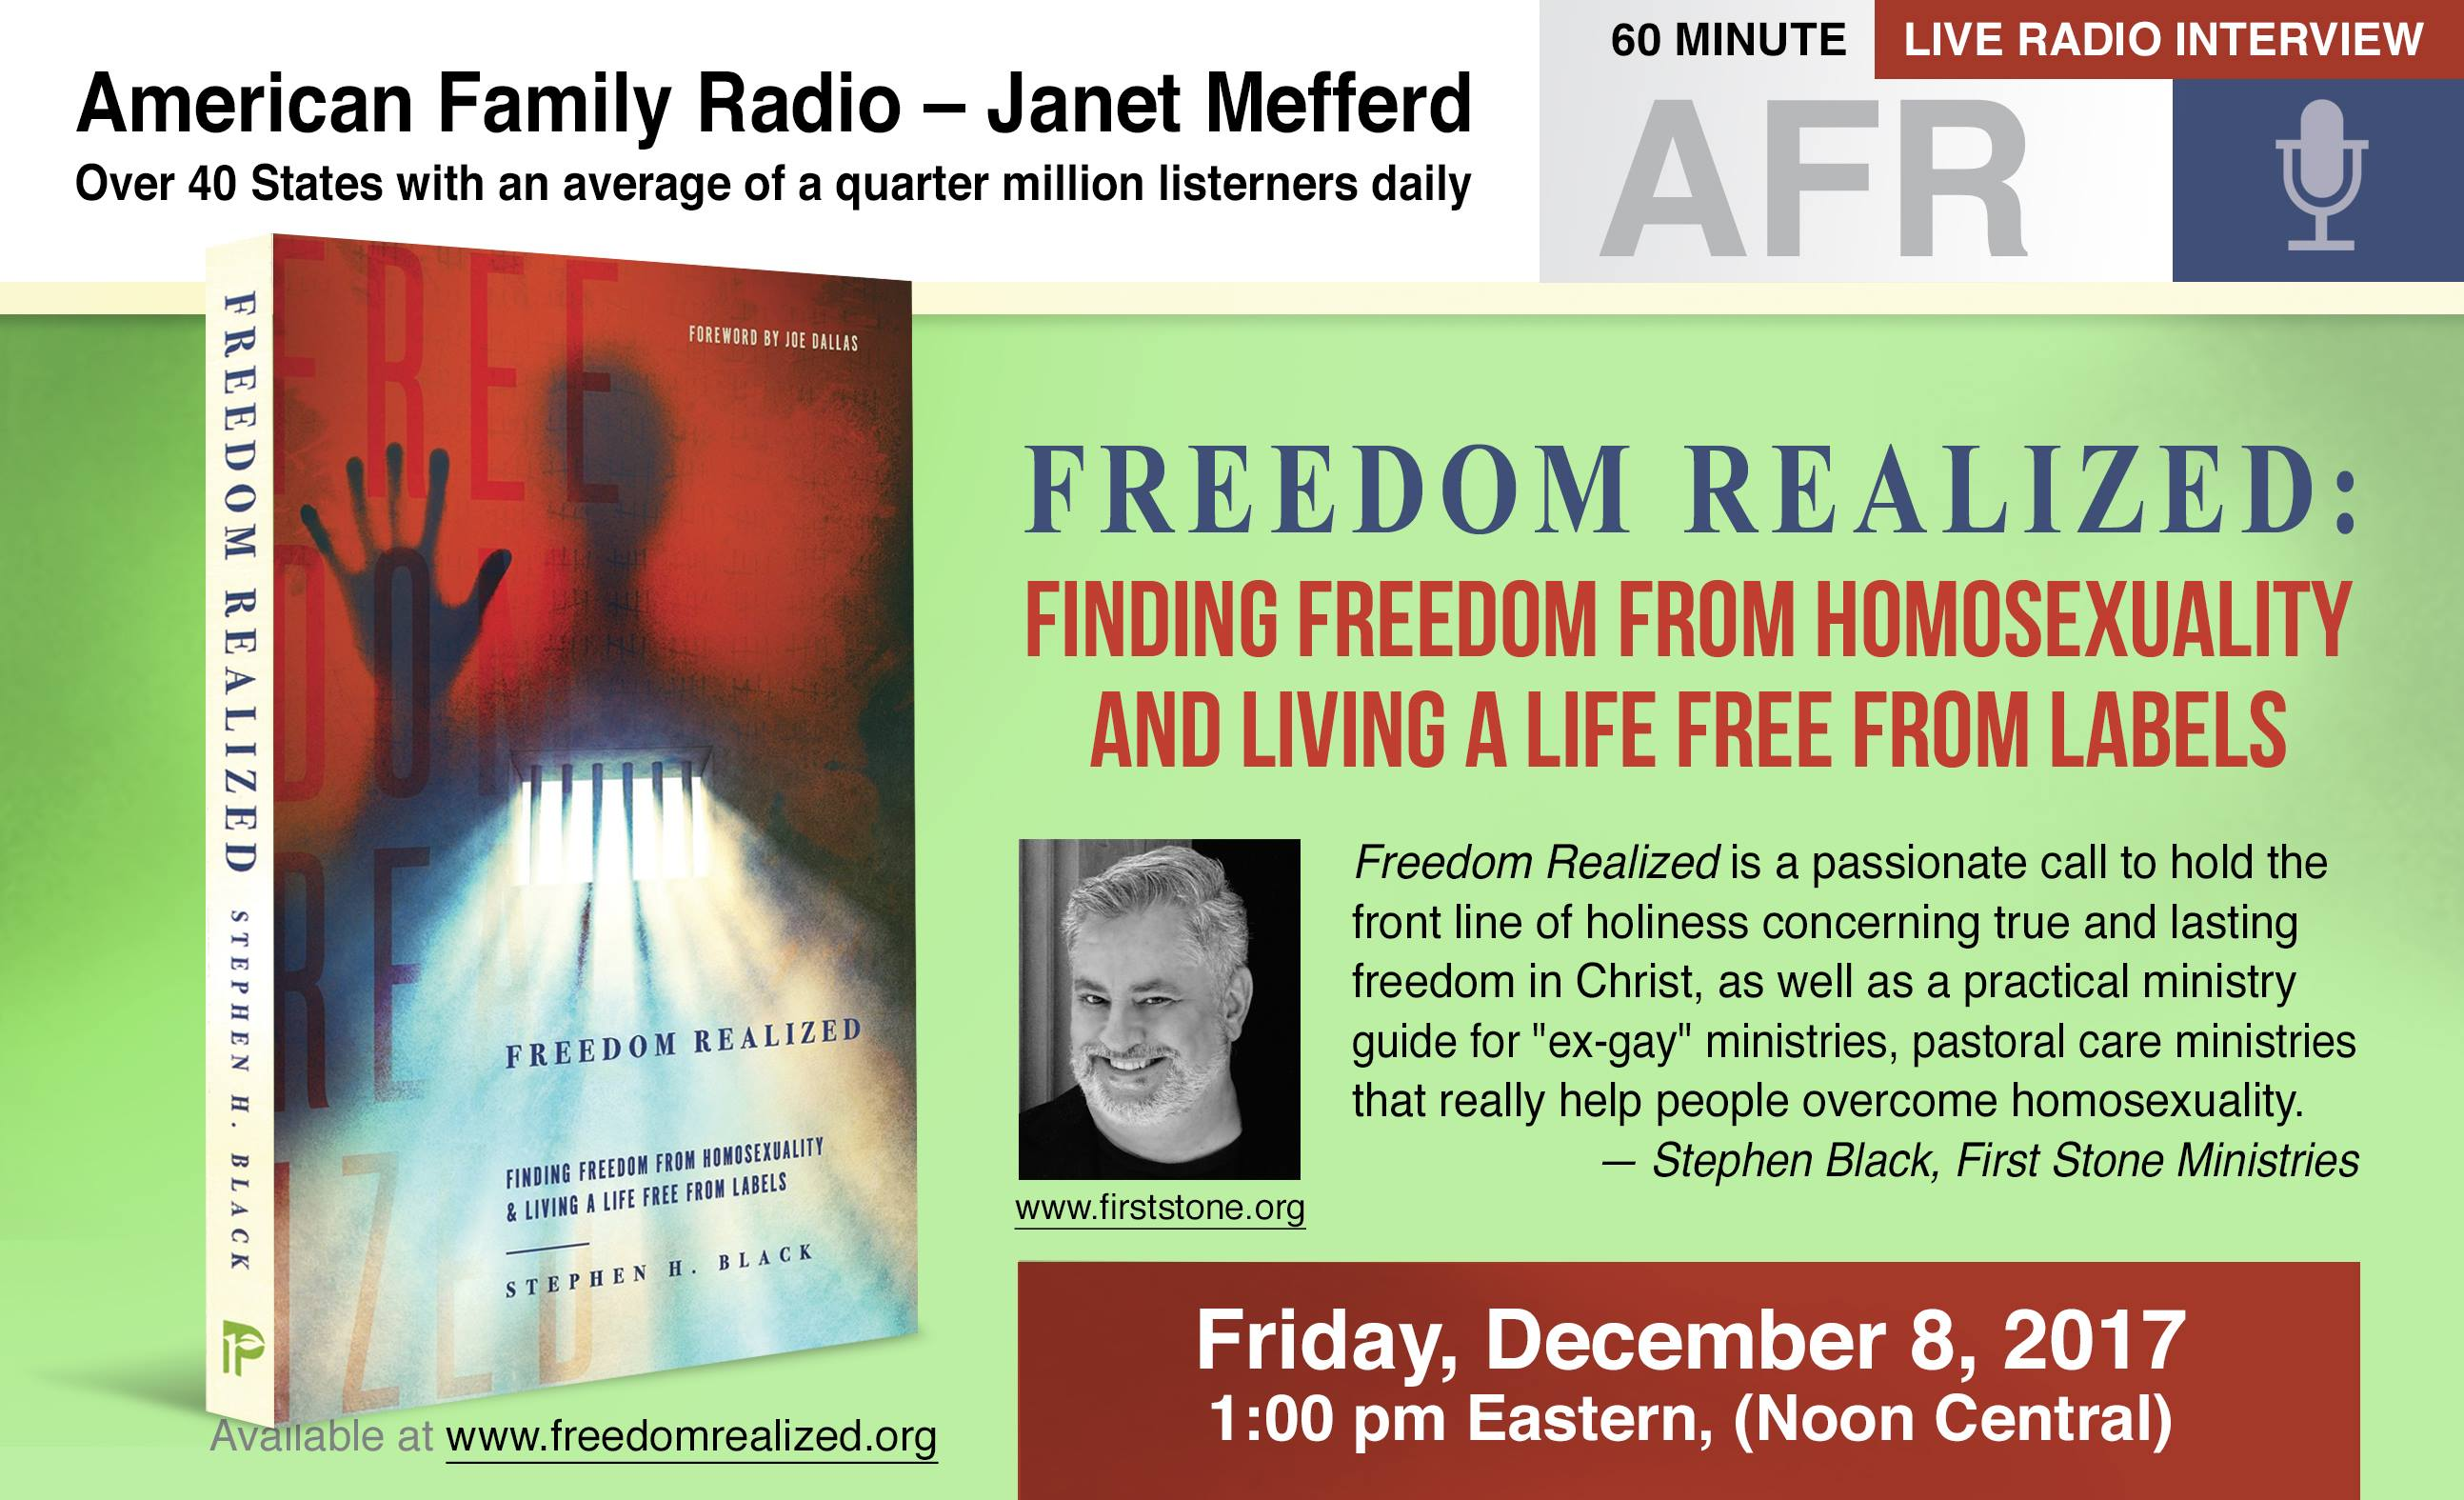 11- FR_Ad-AFR Network on JANET MEFFERD LIVE Dec8